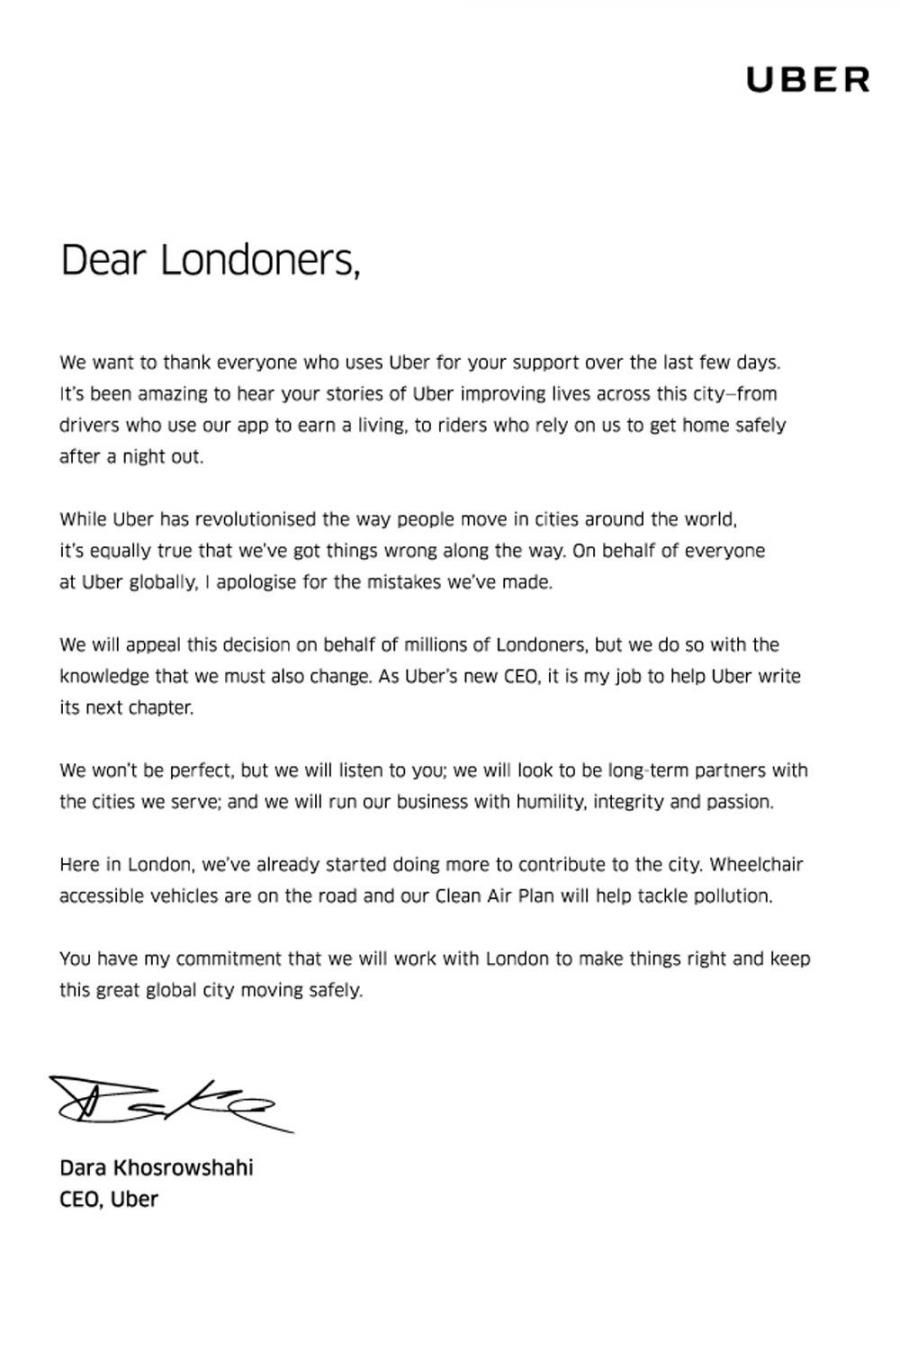 Ubers new CEO issues public apology to London for companys mistakes  The Verge